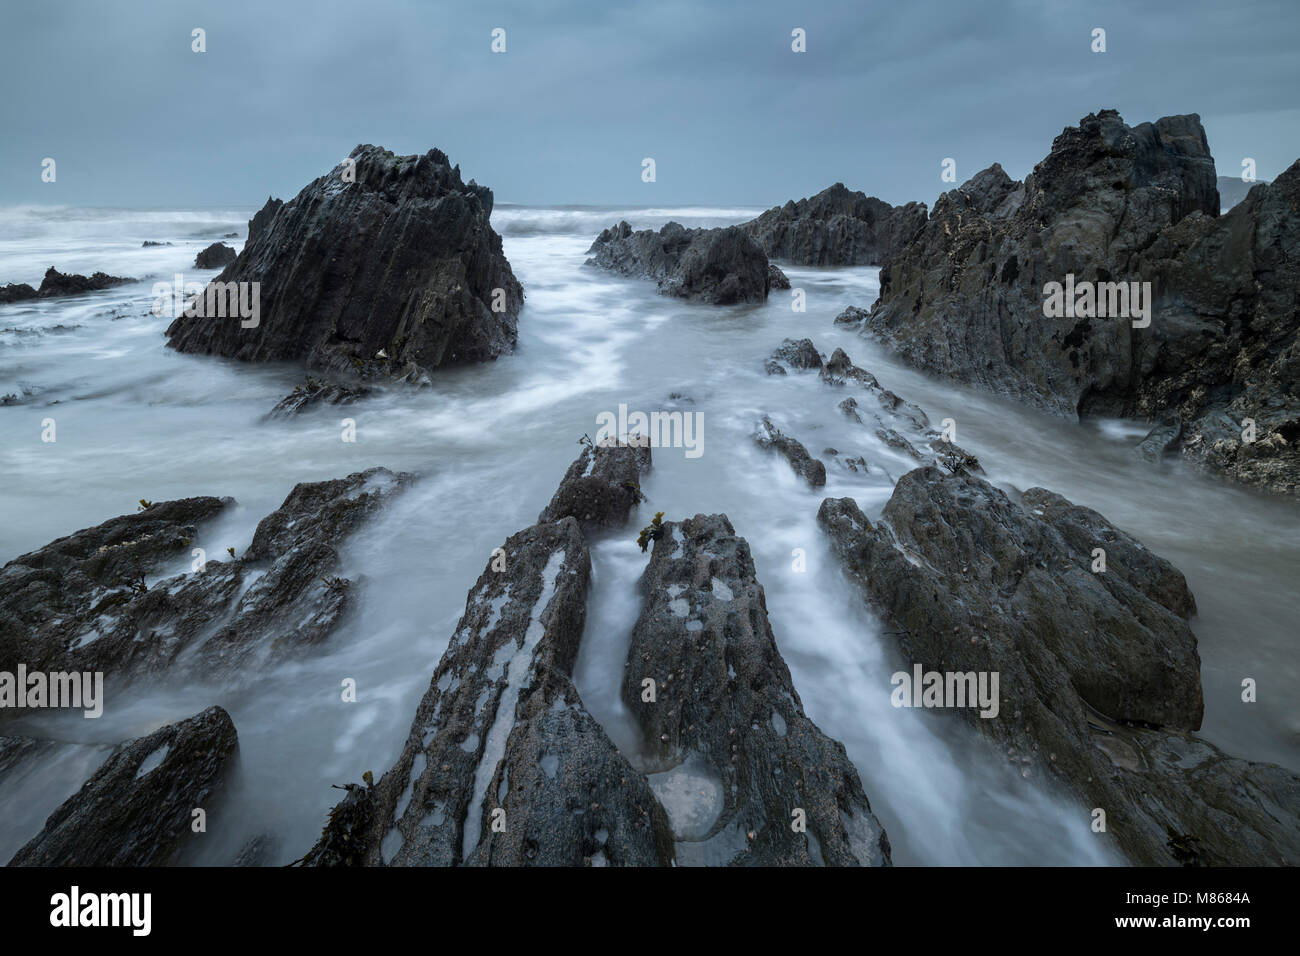 Rocky seashore at Bantham in the South Hams, Devon, England.  Winter (March) 2018. - Stock Image